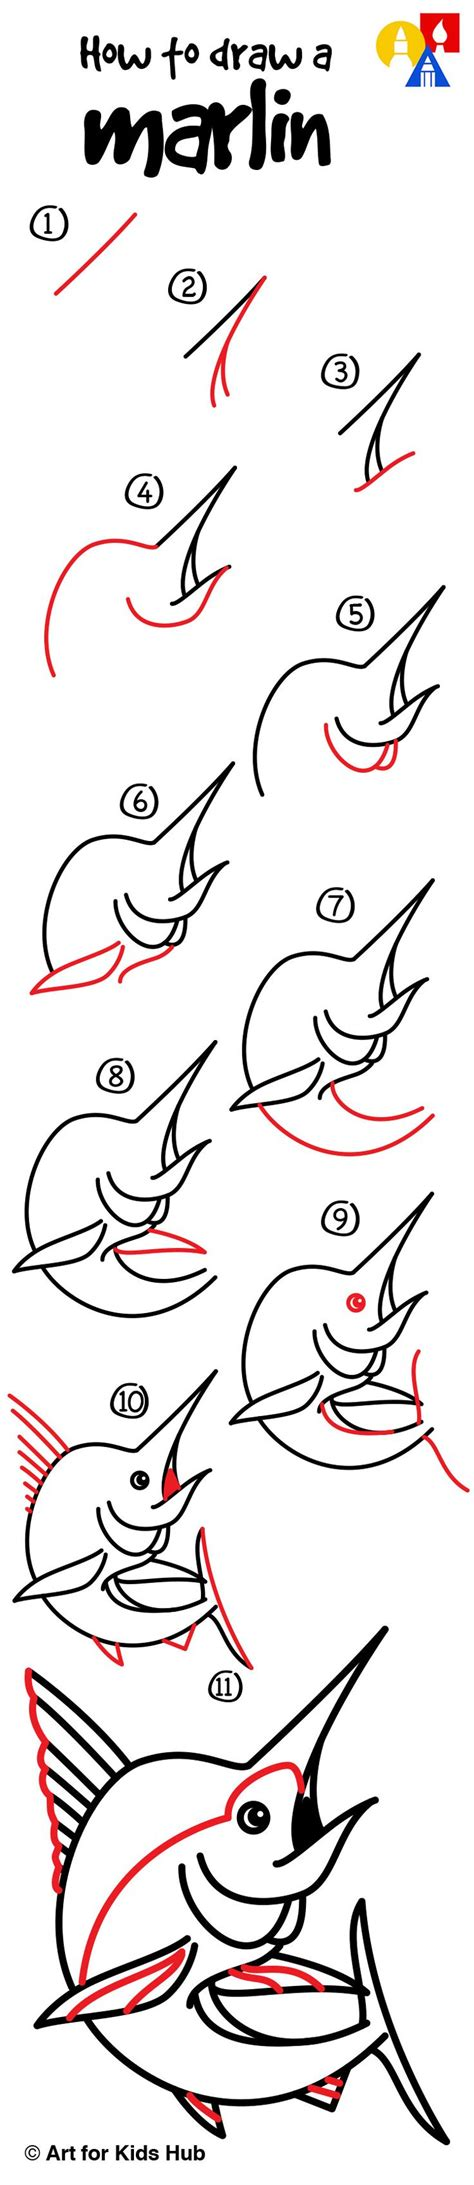 How To Draw A Boat Art Hub by How To Draw A Marlin Art For Kids Hub Ska How To